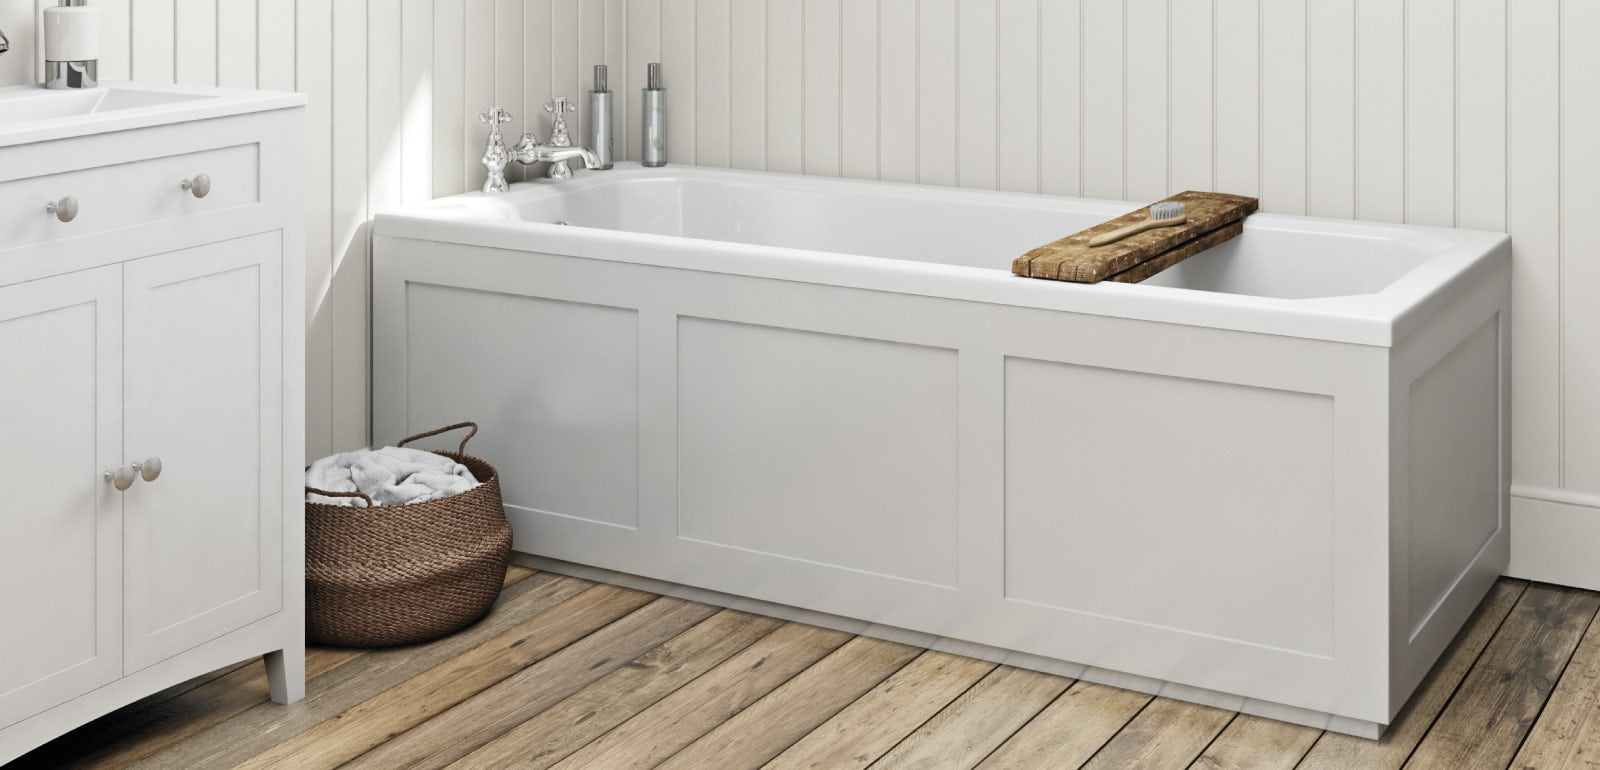 How to fit a wooden bath panel